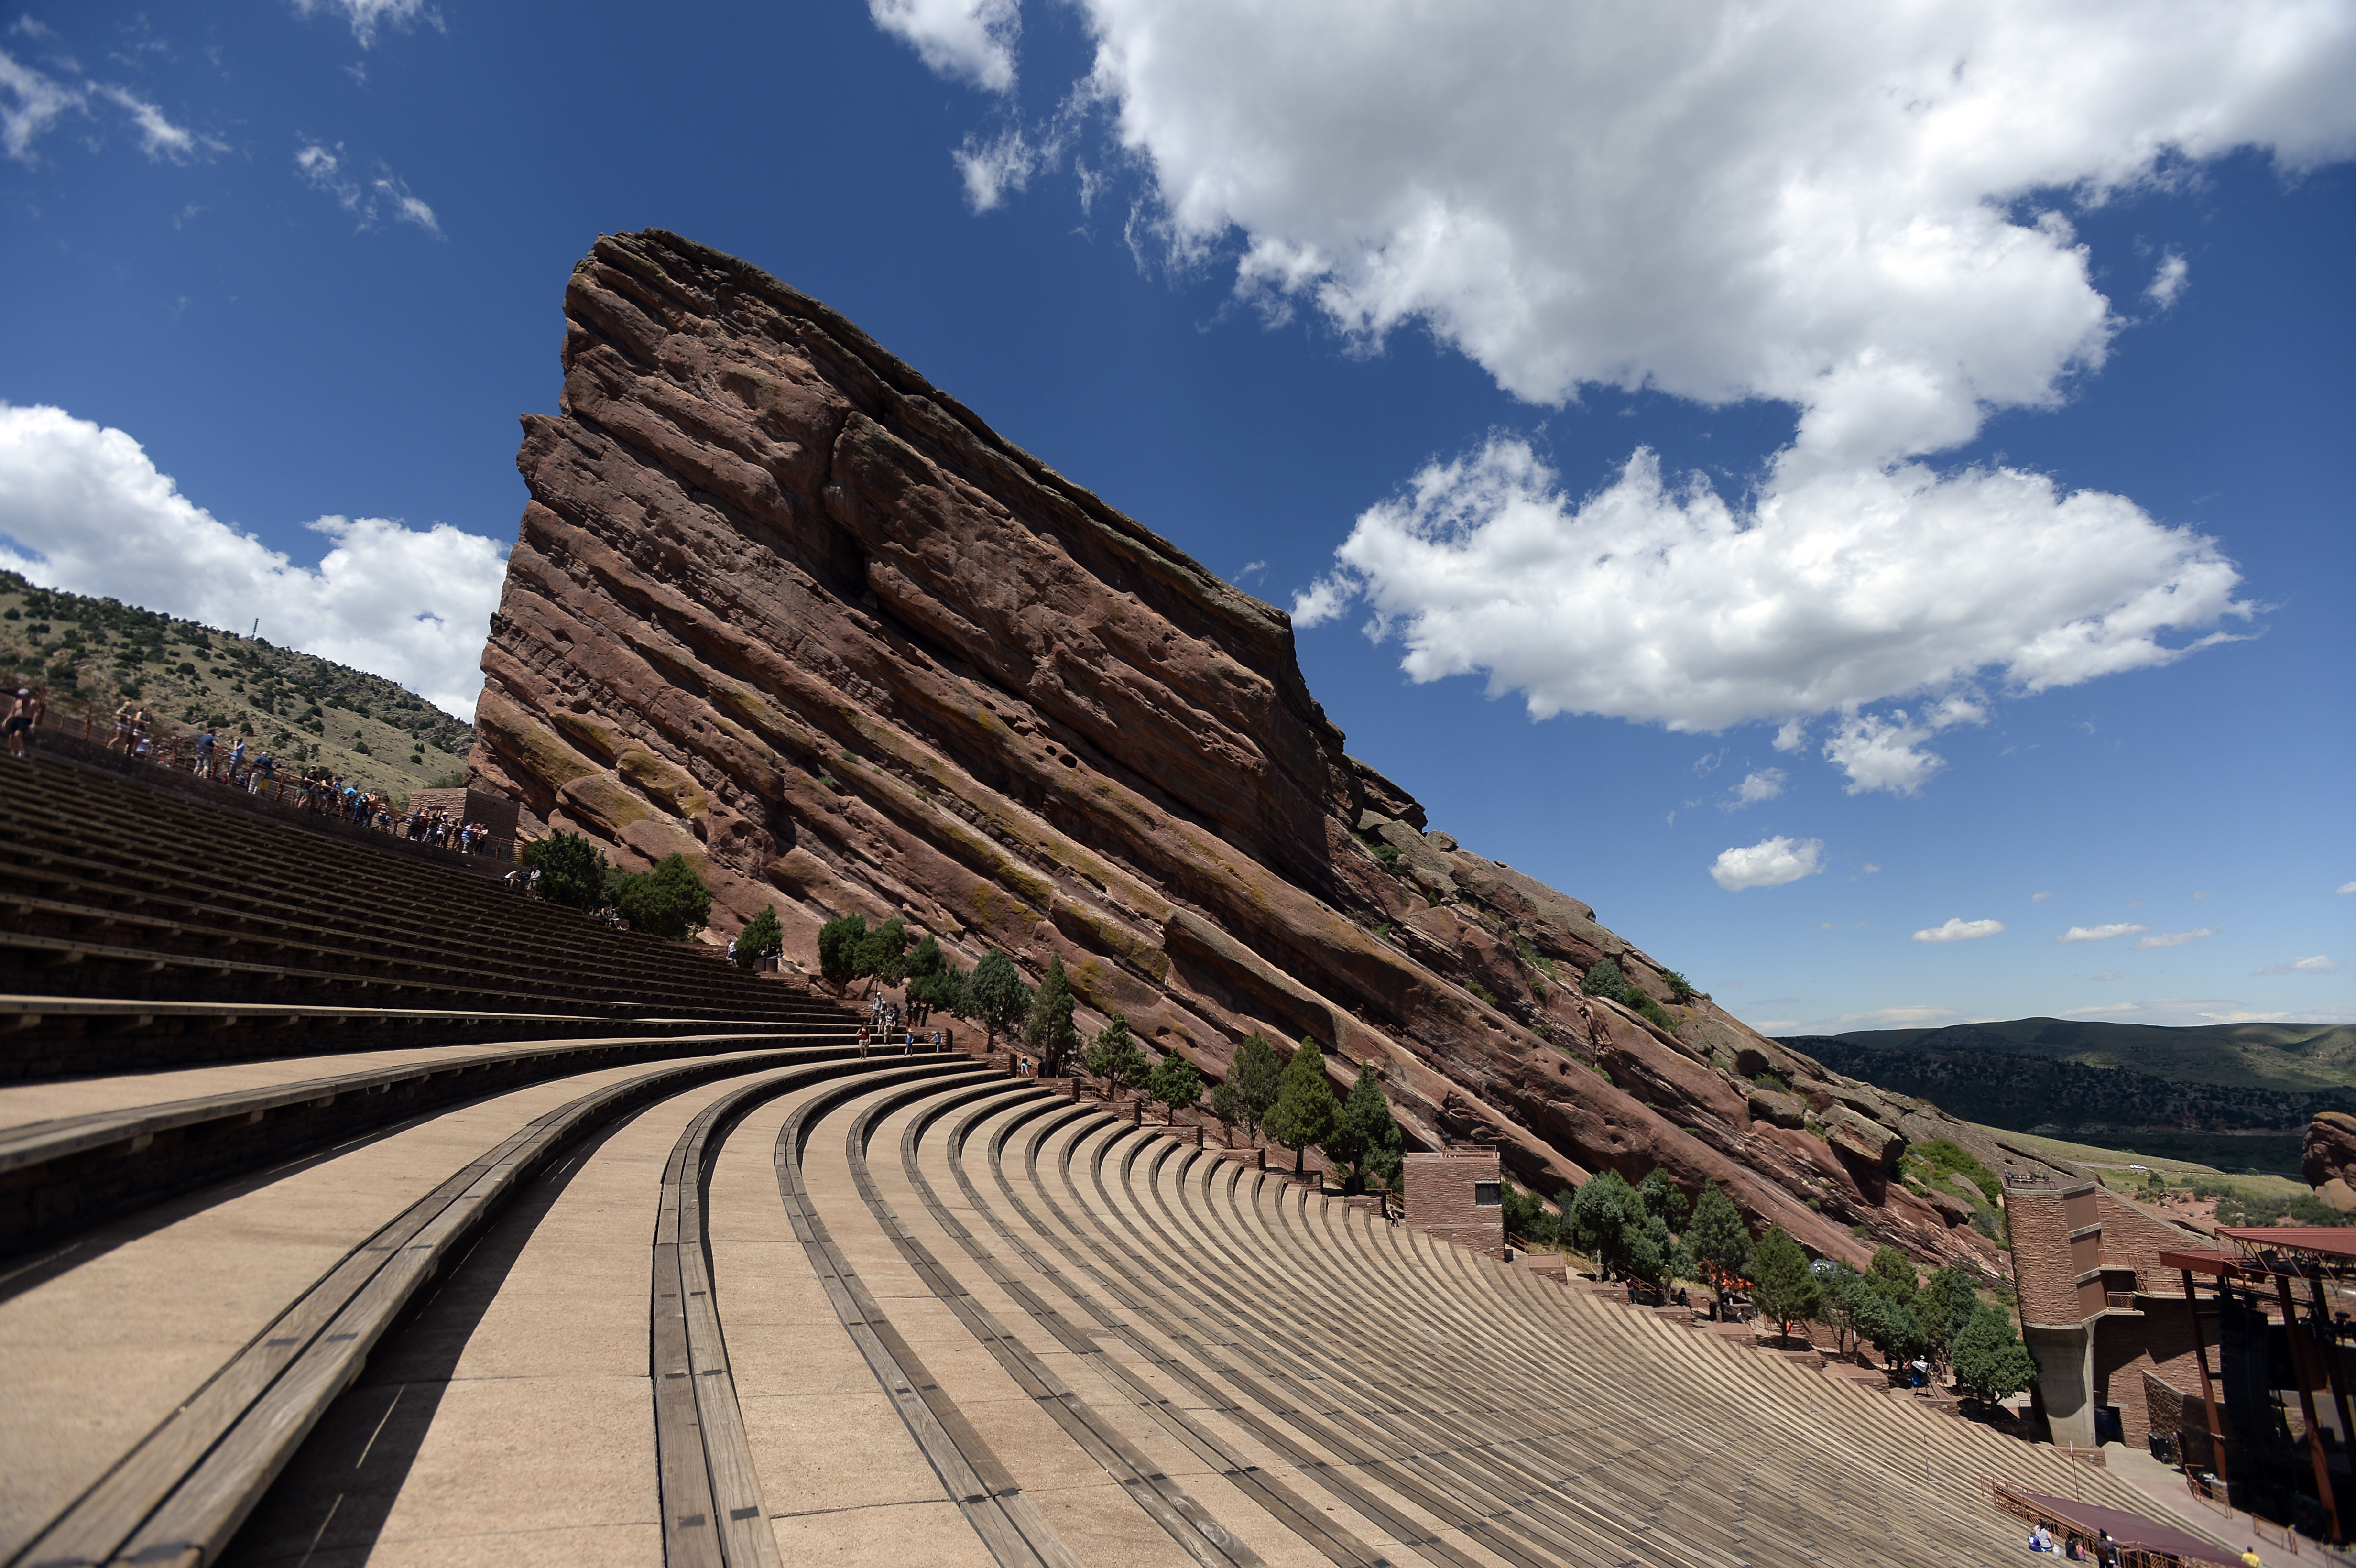 Visitors head to Red Rocks to get in a workout and to visit the rocks, Creation, Ship Rock and Stage Rock, on Aug 4, 2015, in Morrison, Colo.